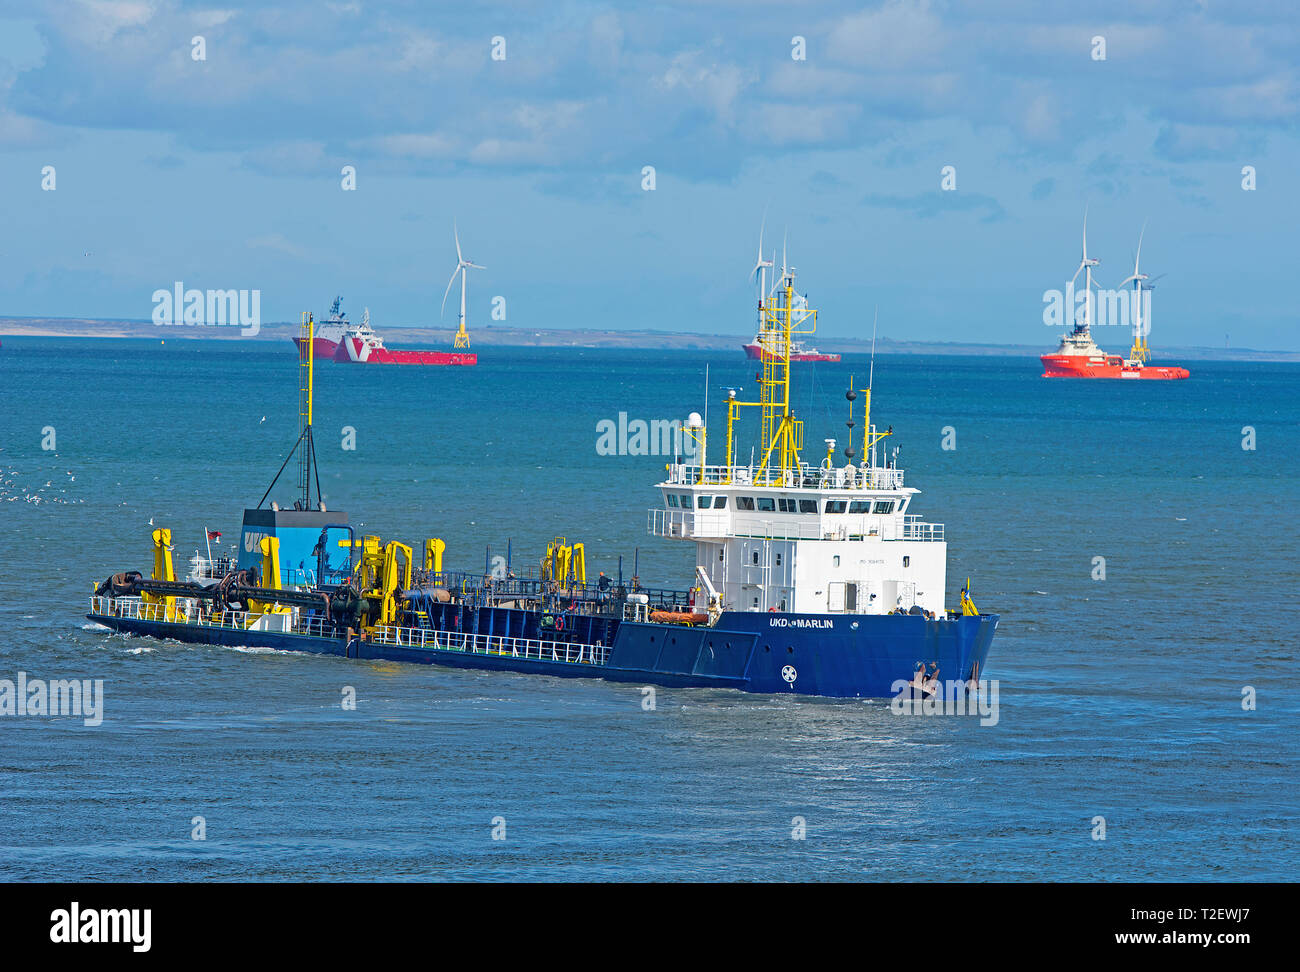 UKD Marlin .TRAILING SUCTION HOPPER DREDGER working in the Aberdeen harbour approach channel, in North East Scotland. - Stock Image